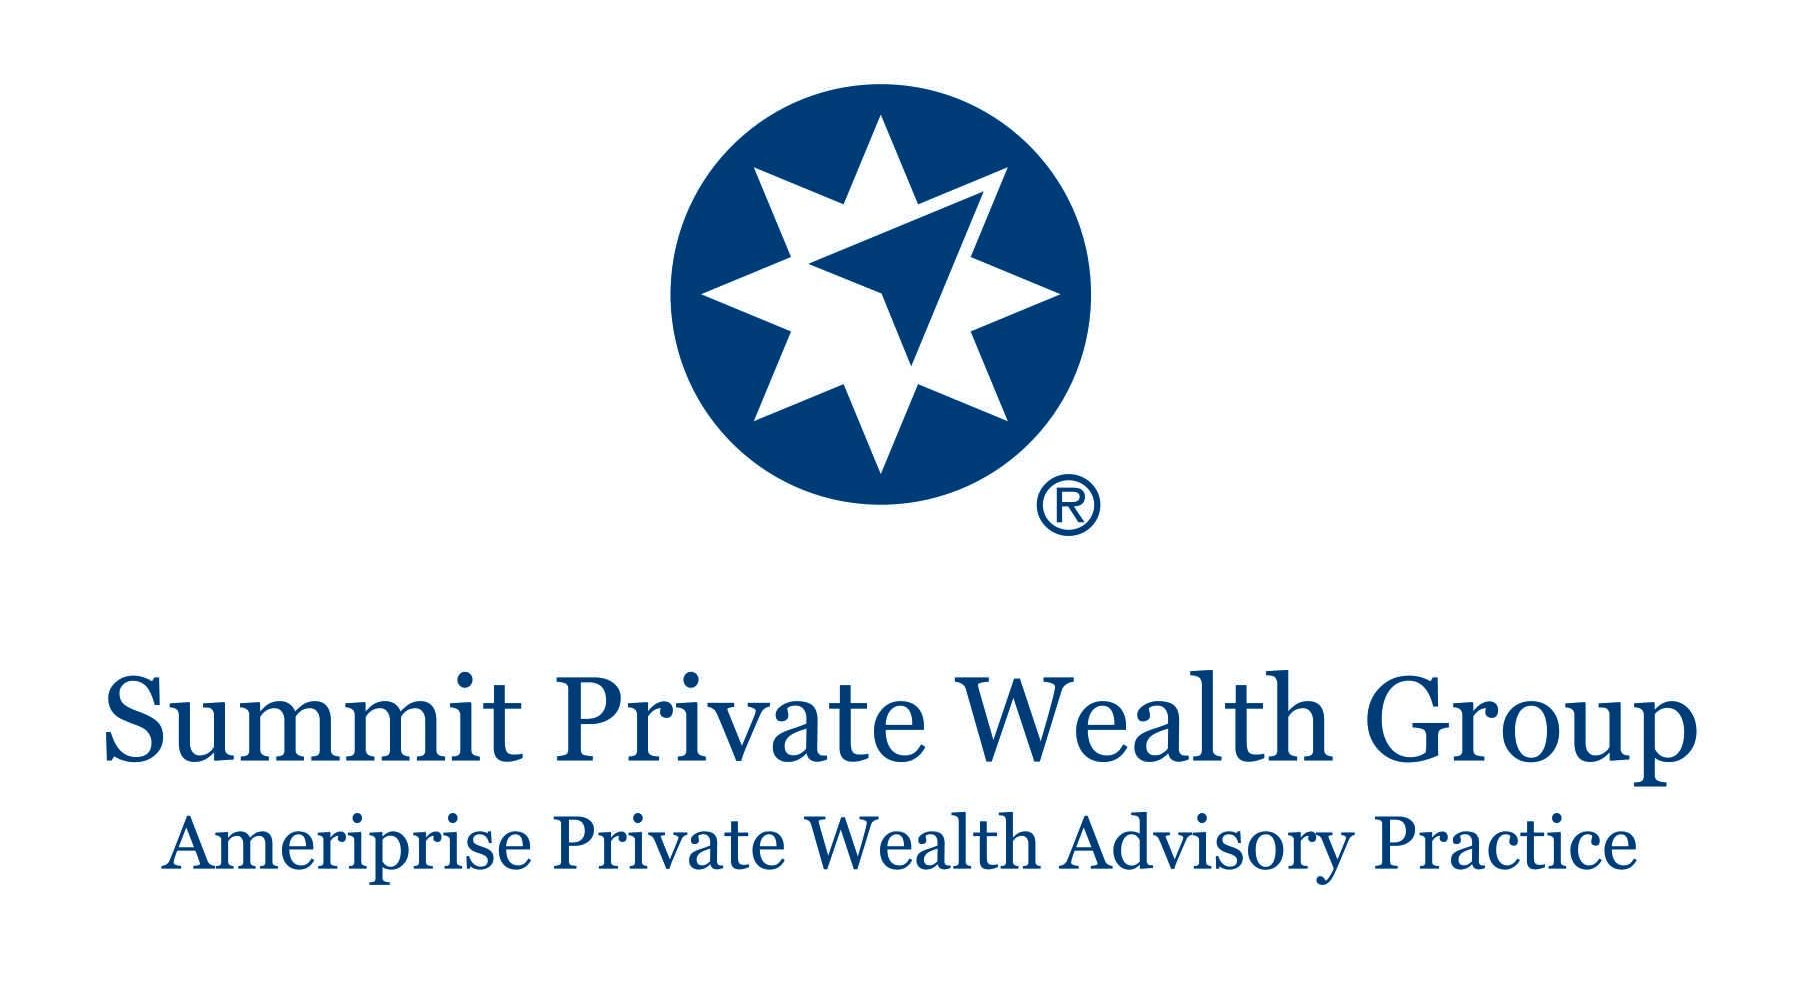 PWA_Summit Private Wealth Group_Med_B.jpeg